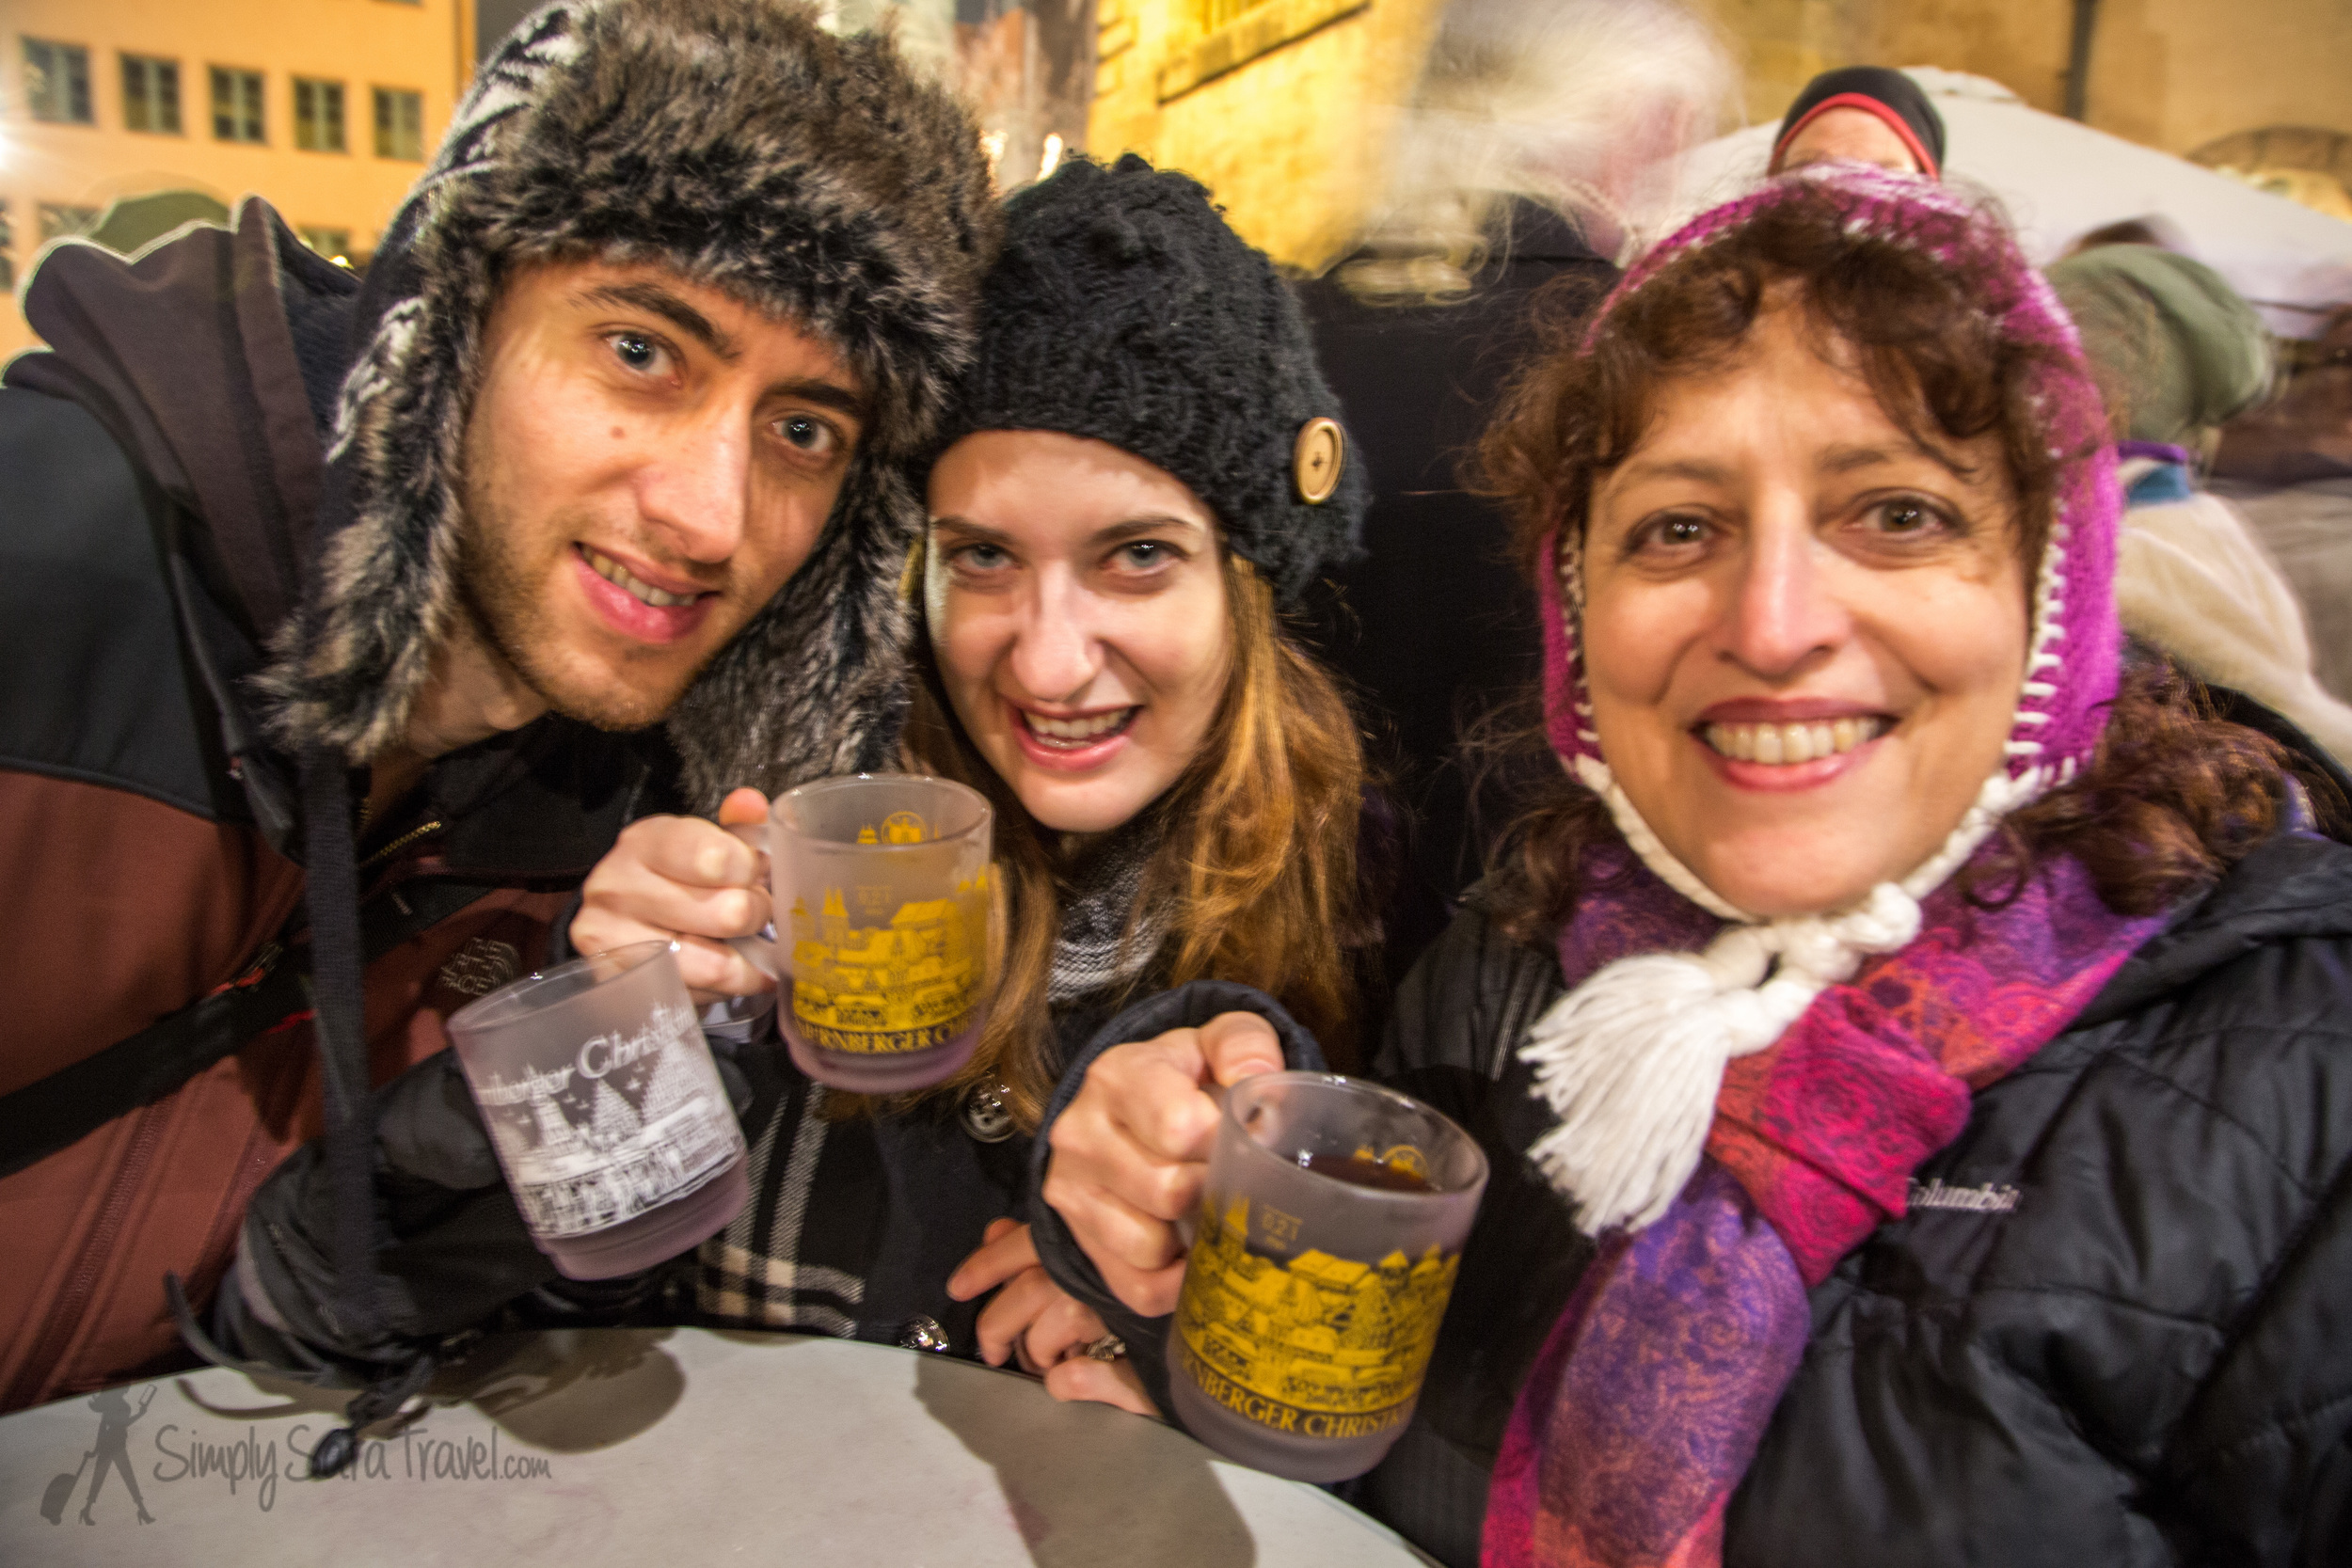 Photo credit: my dad| Apparently the best glühwein stand in Nuremberg is in theInternational market section at the Italian stand from Verona. 100% merlot! We chatted with a few locals nearby the stand who were all drinking the same.